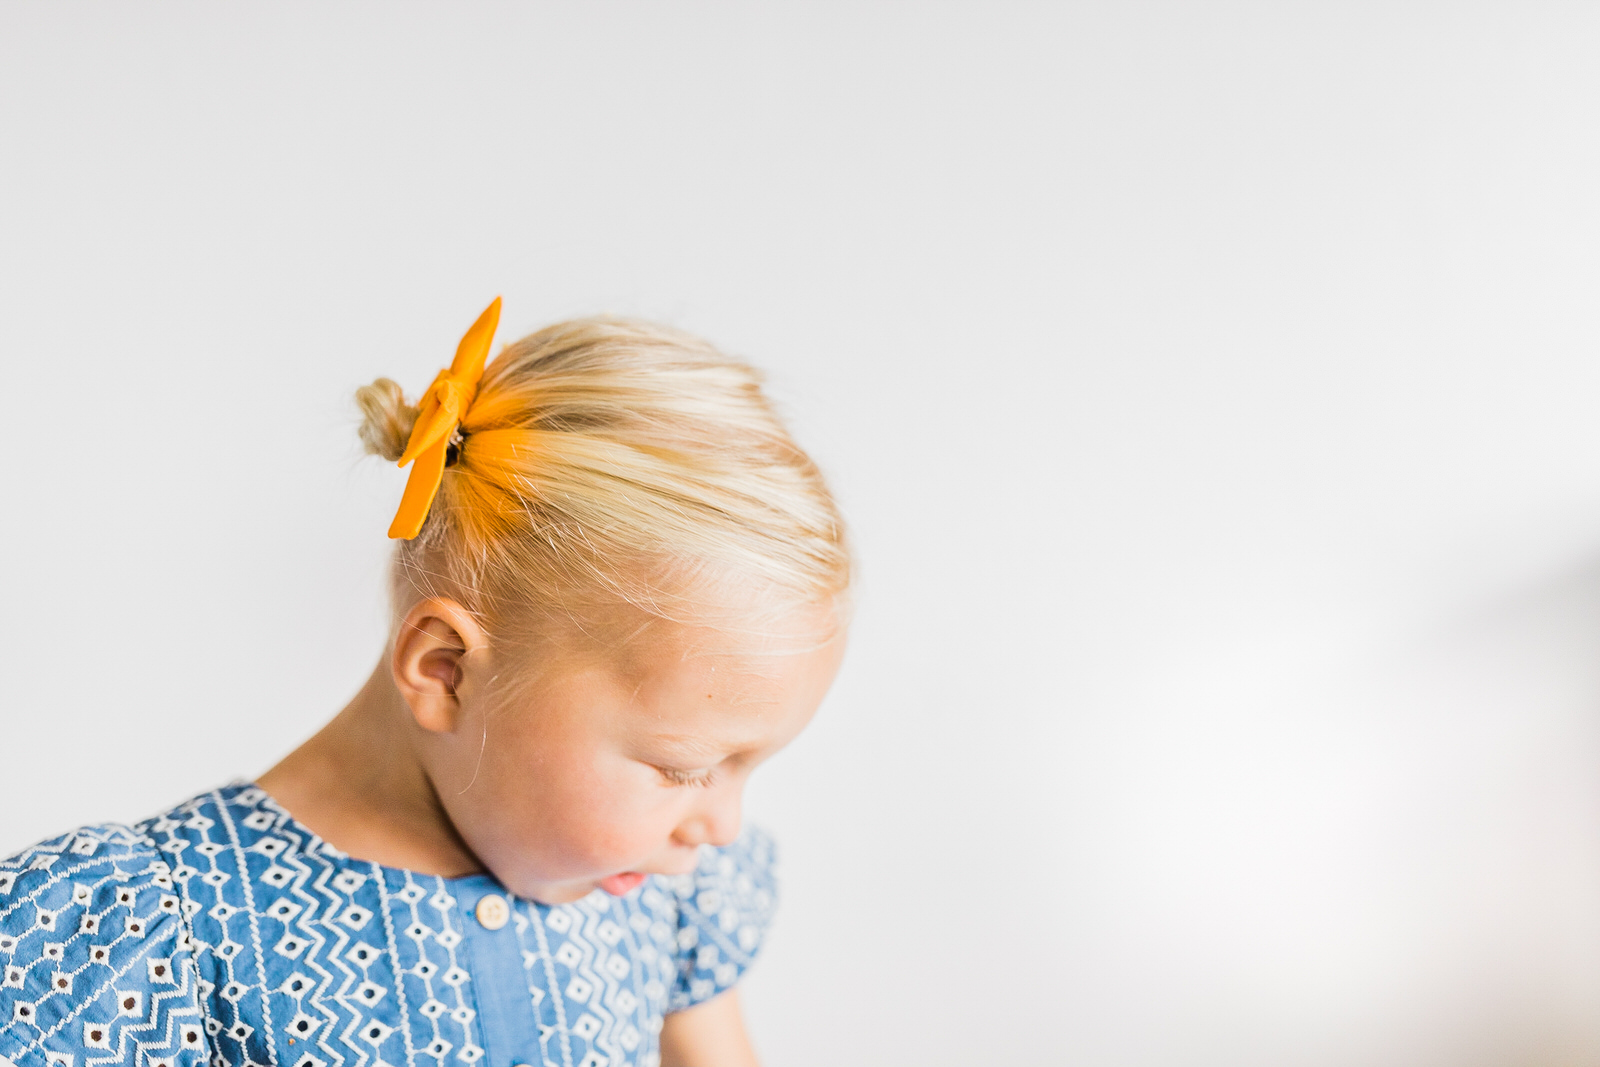 big-island-photographer-toddler-girls-bows-small-business-8589.jpg